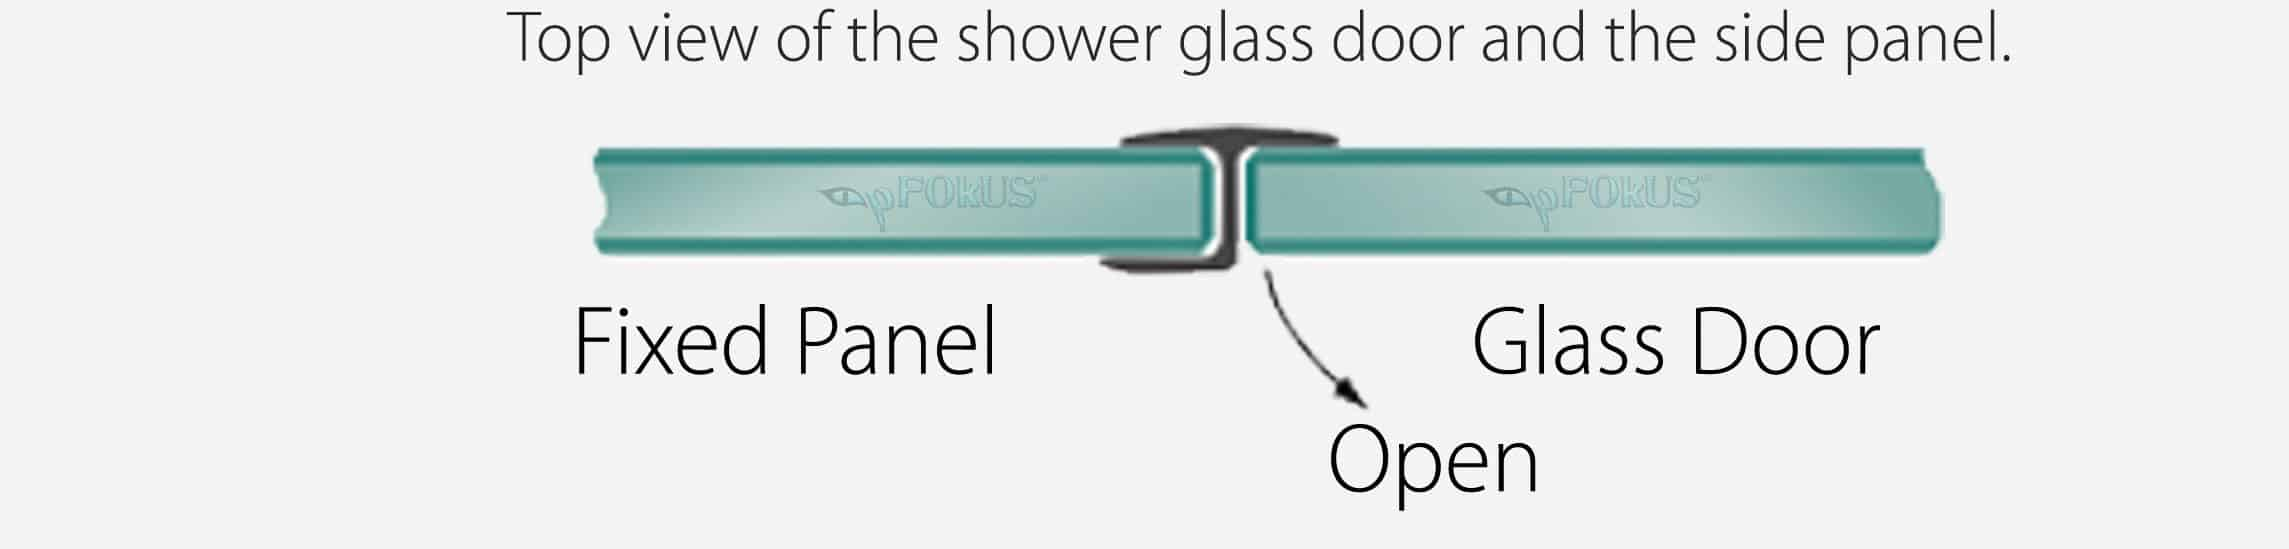 DS124-Glass-Shower-Door-Sweep-side-panel